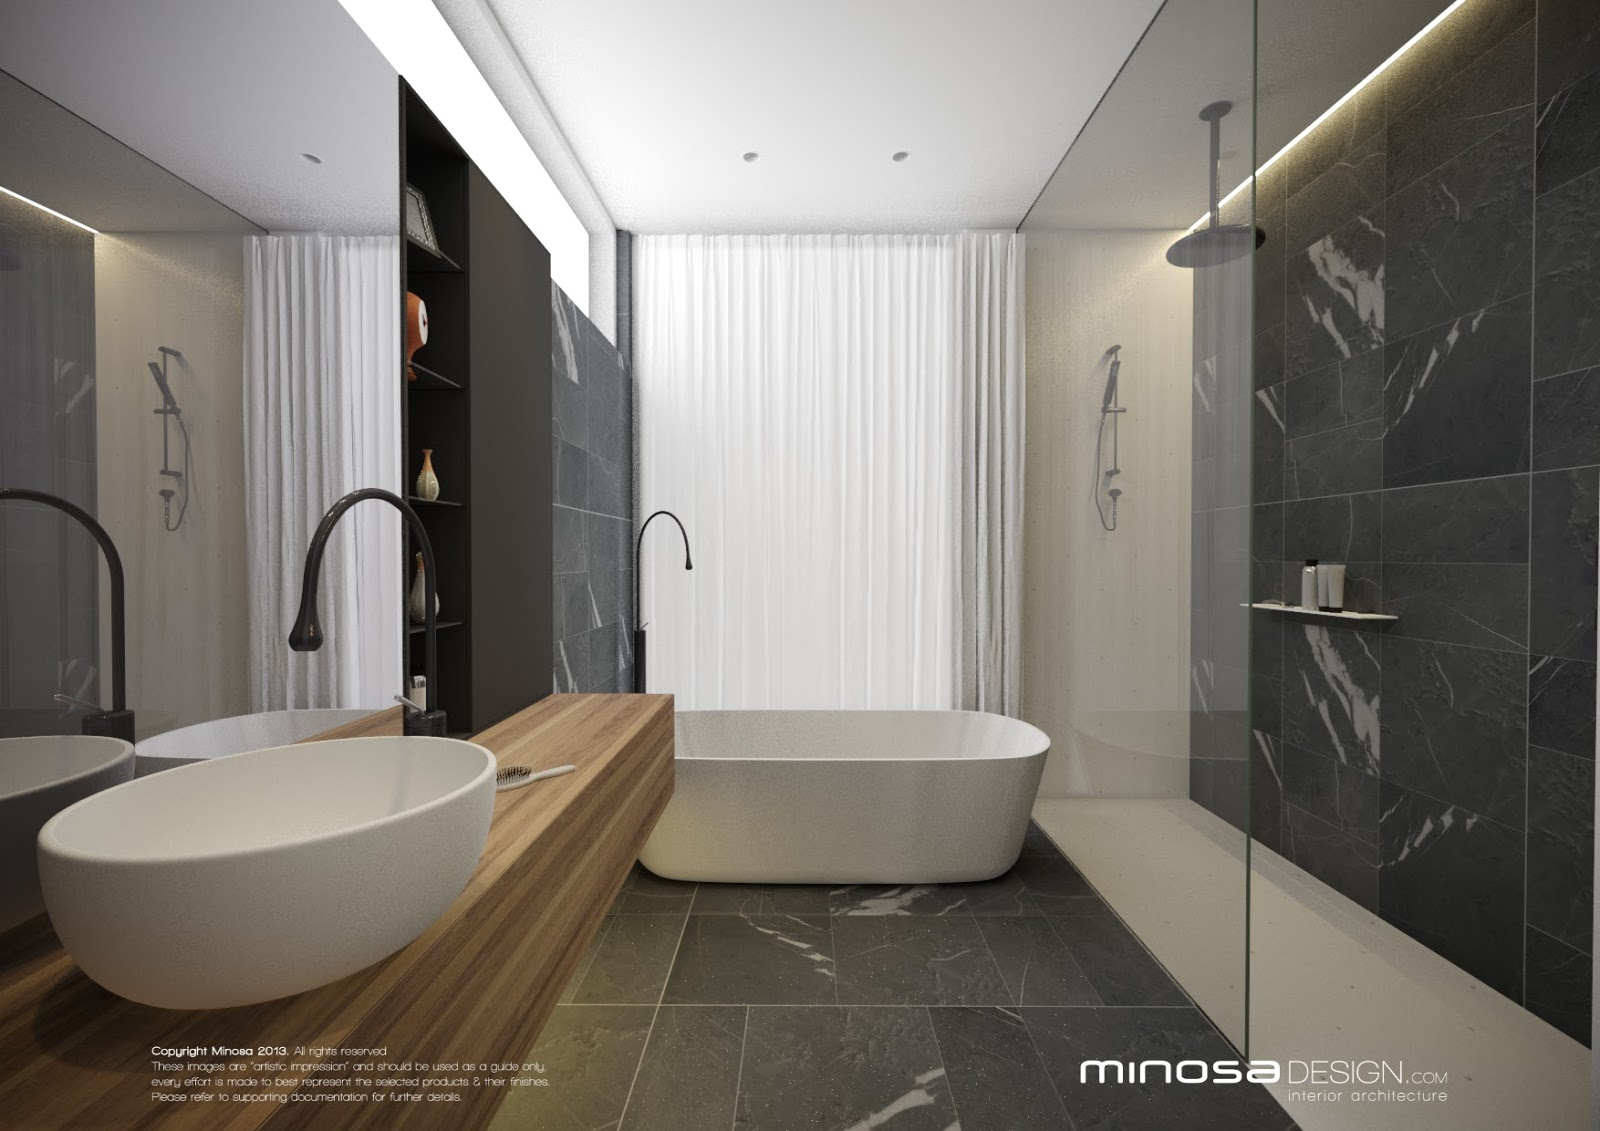 Minosa modern bathroom design to share Bathroom design shower over bath